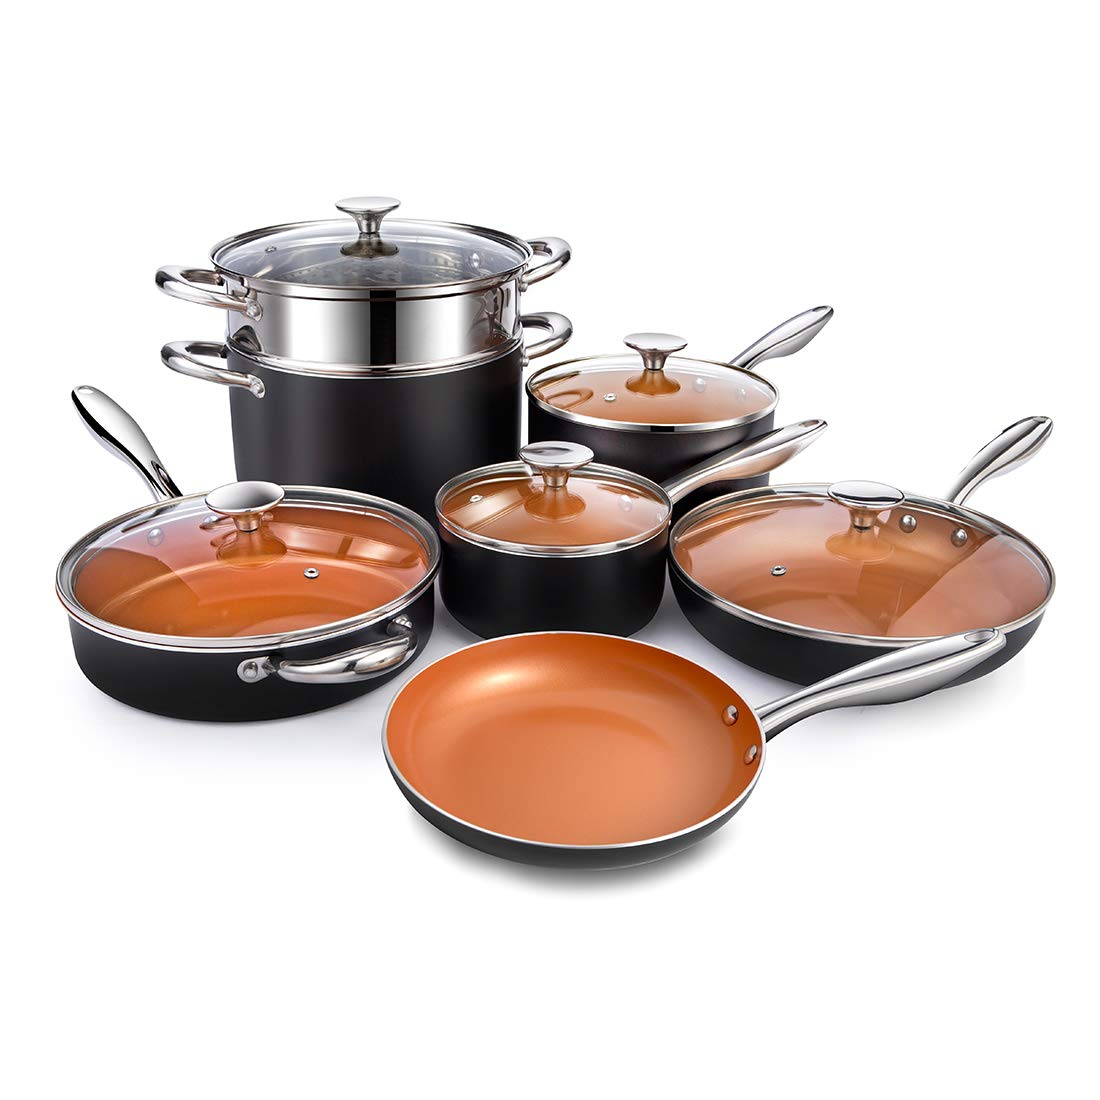 MICHELANGELO Copper Cookware Set 12 Piece with Nonstick Ceramic Coating, Copper Pots and Pans Sets Induction, Ceramic Cookware Set Nonstick - Include Skillet, Saute Pans, Stock Pot and Steamer Insert